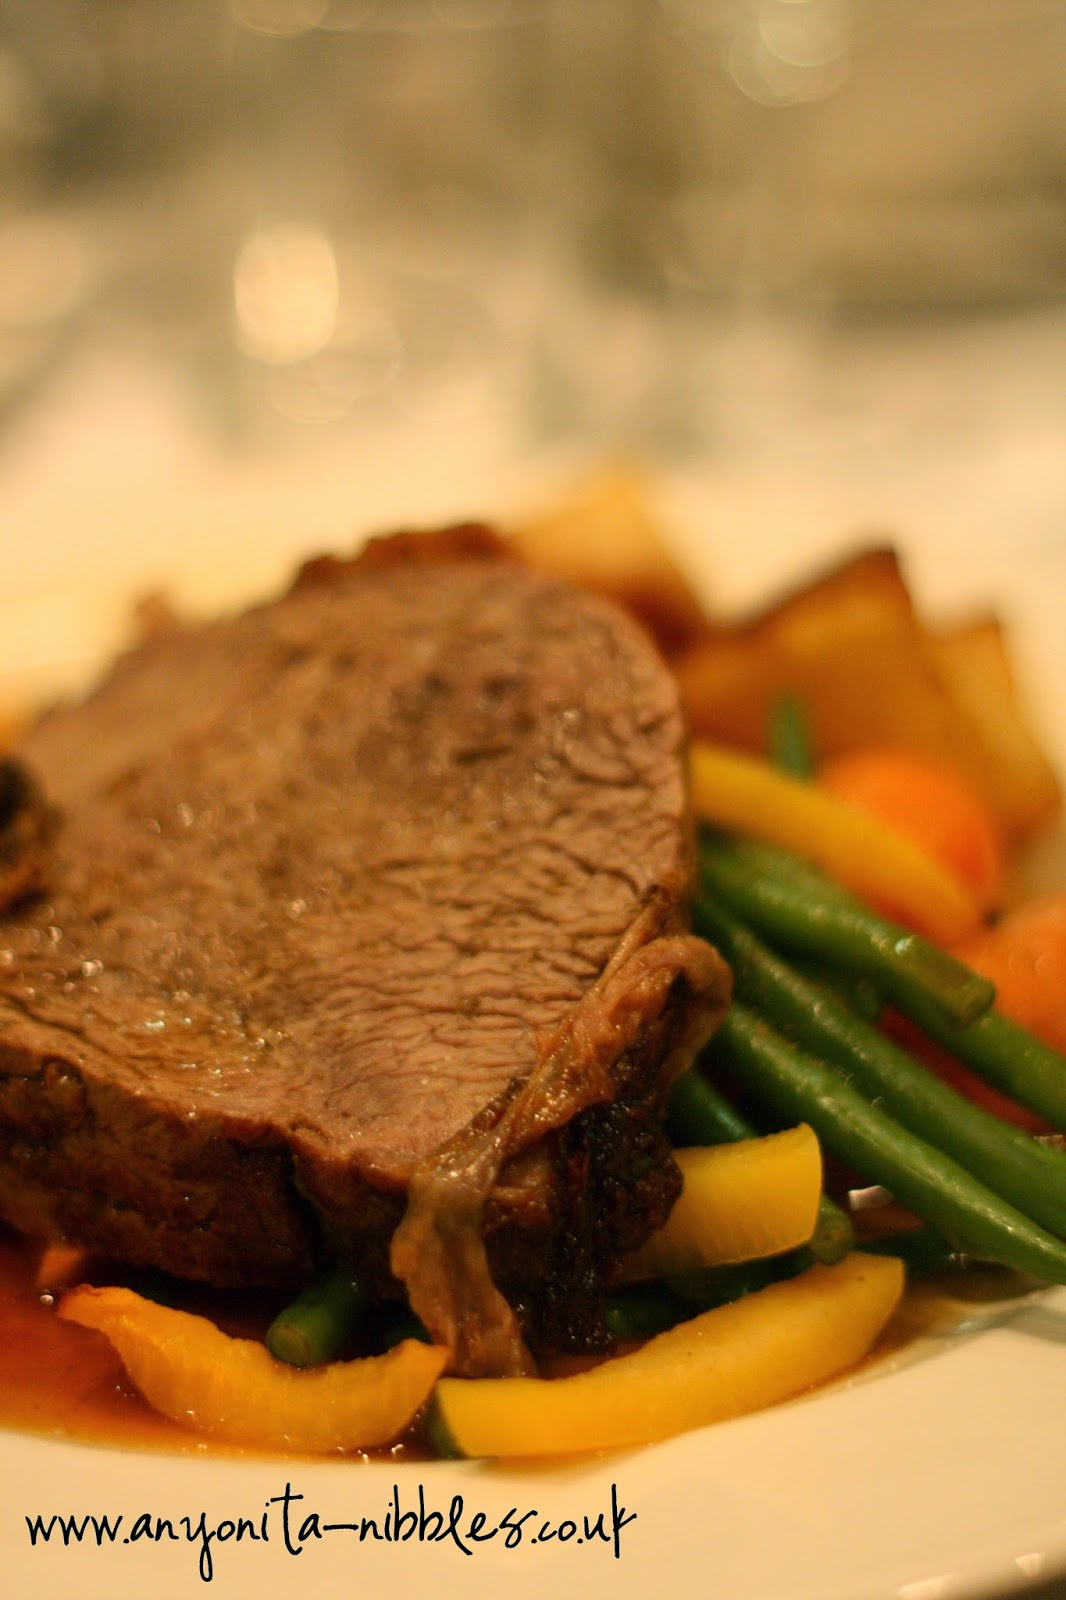 Roast beef and vegetables from the Renaissance Hotel in Manchester | Anyonita-Nibbles.co.uk